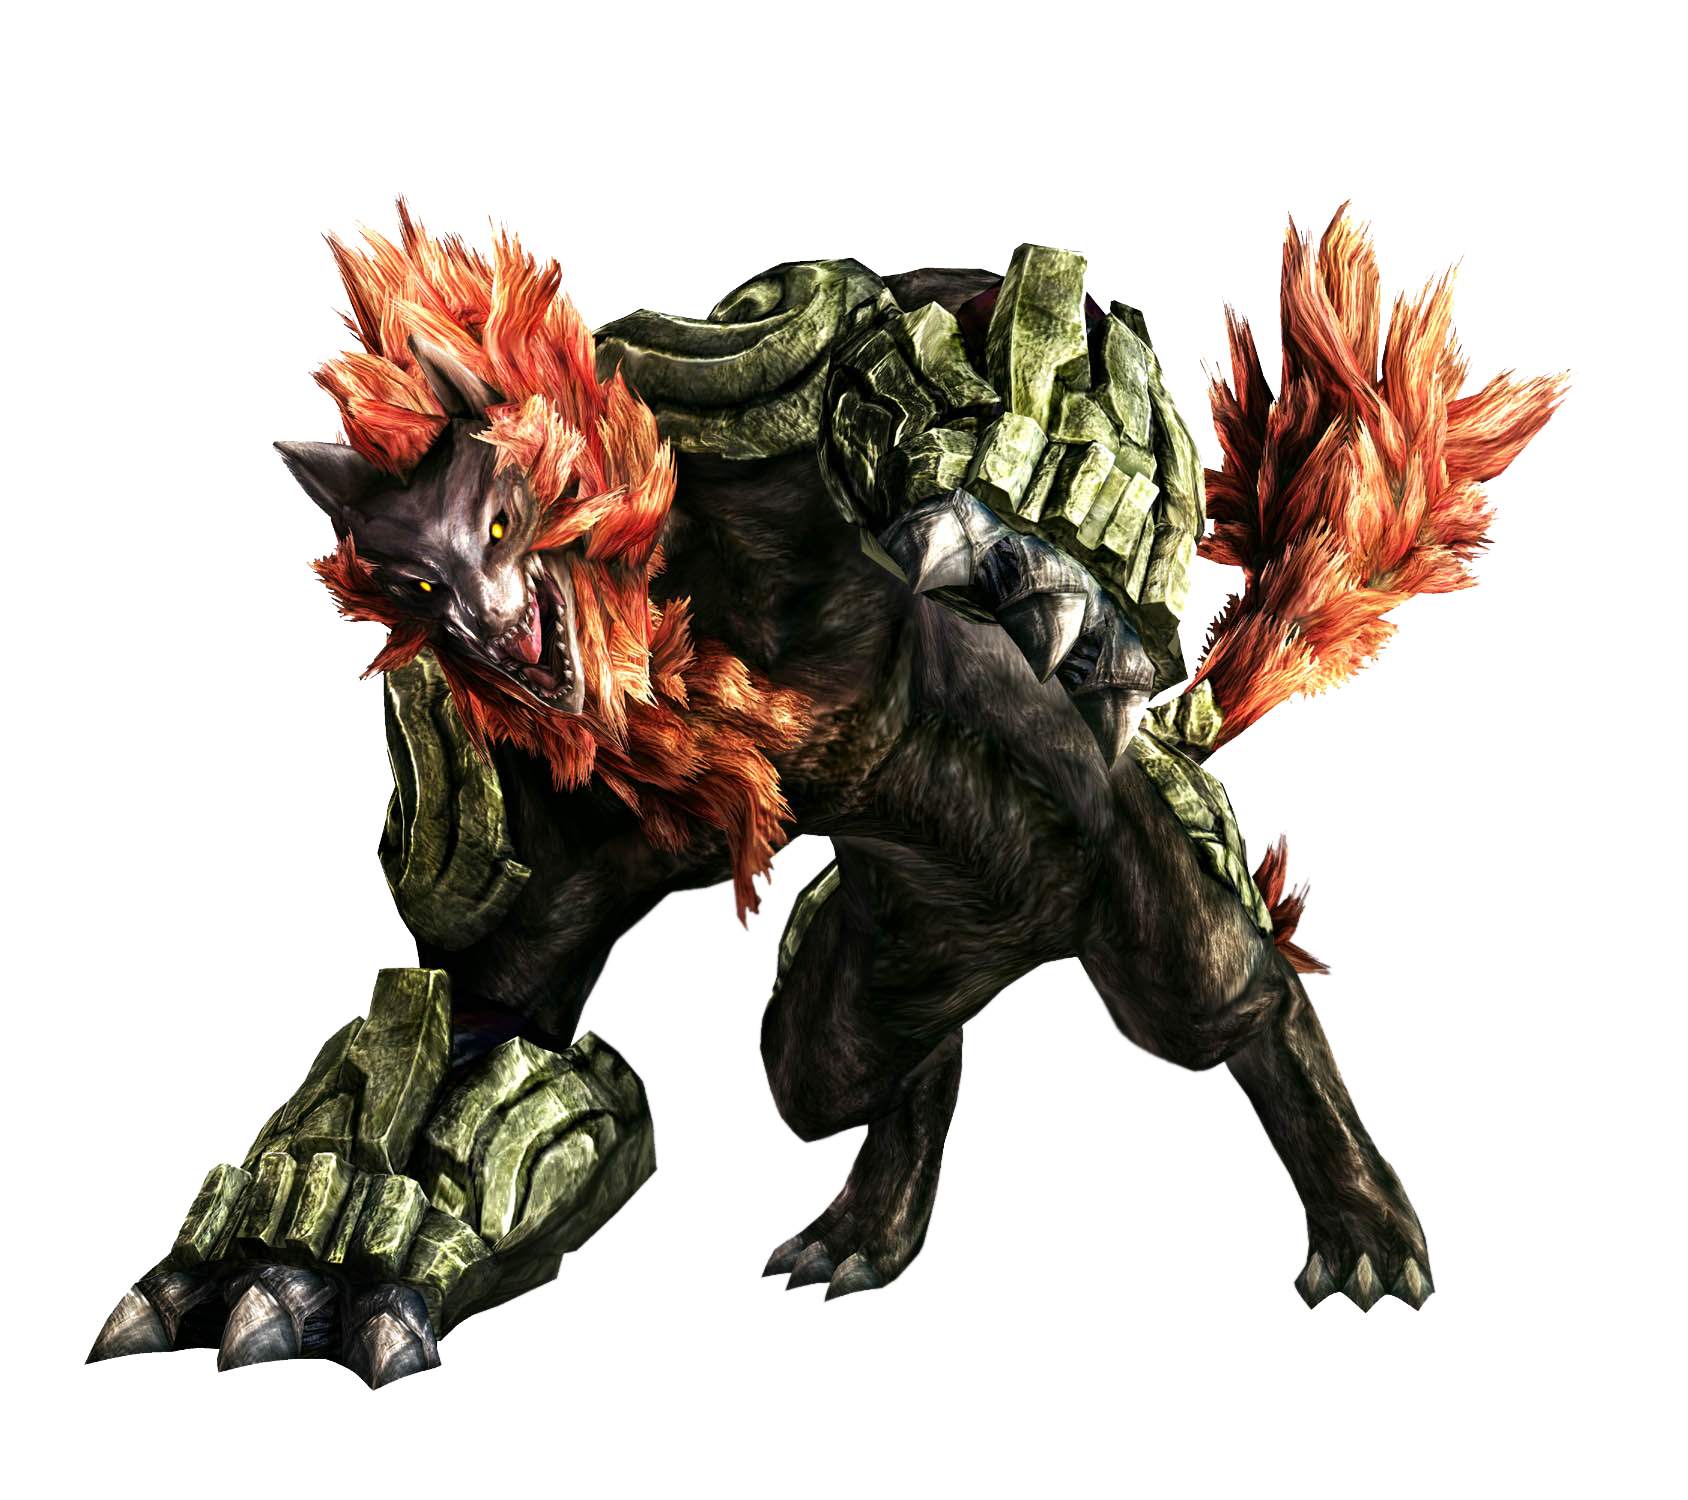 Aragami god eater png. Garm wiki fandom powered